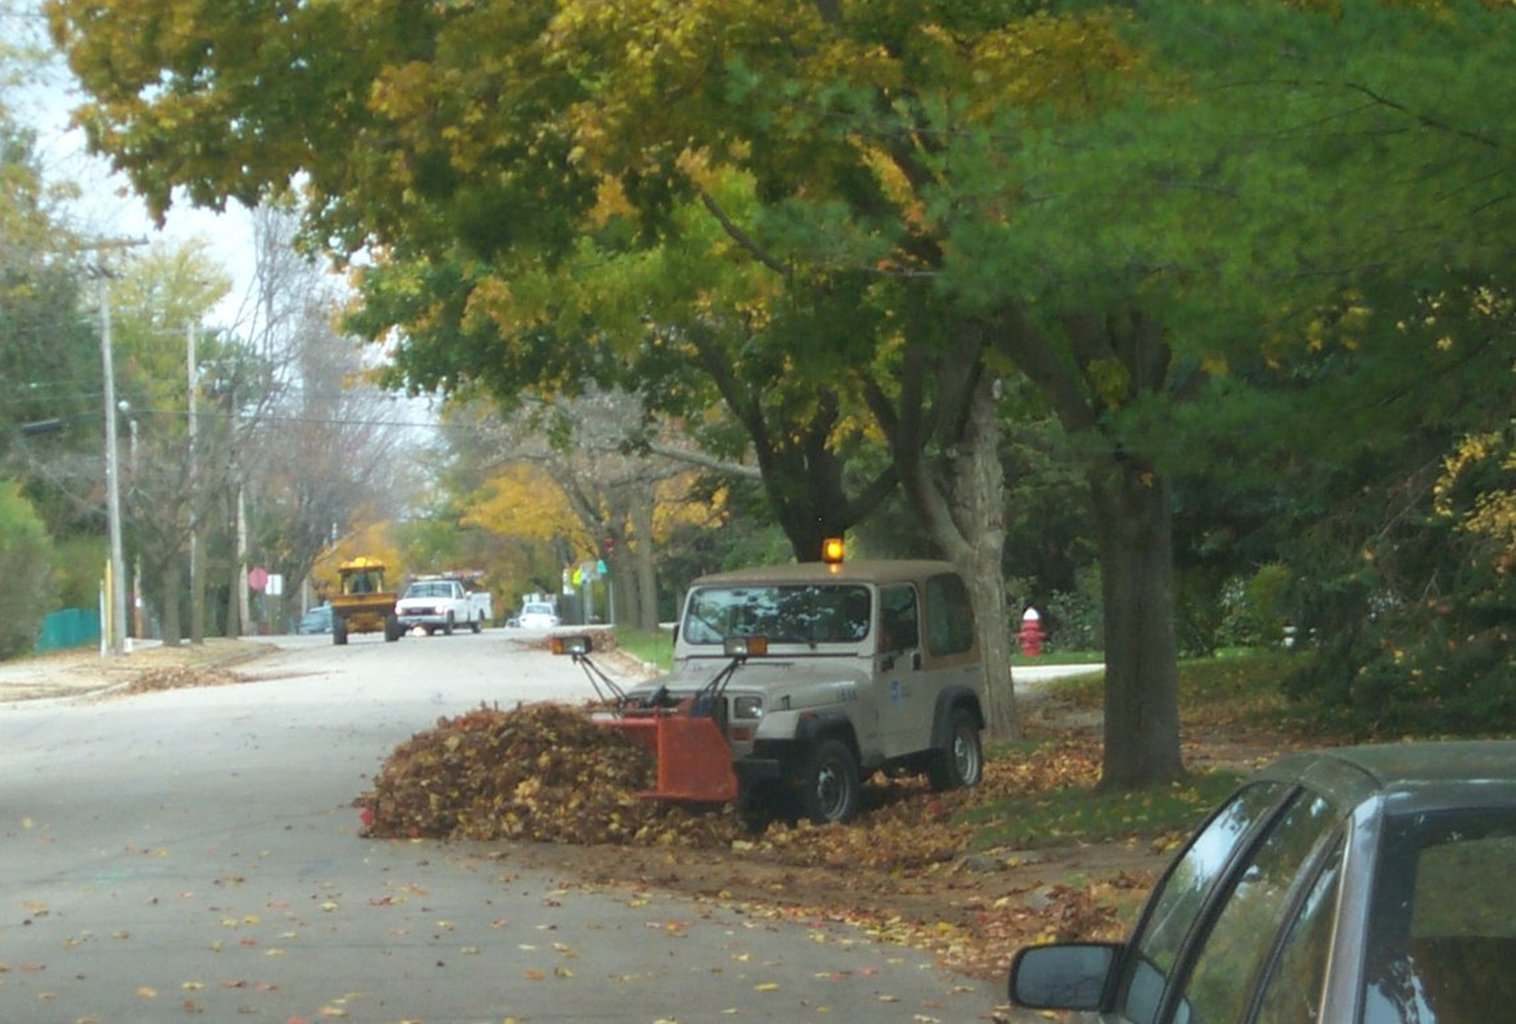 Removing fallen leaves can improve urban water quality